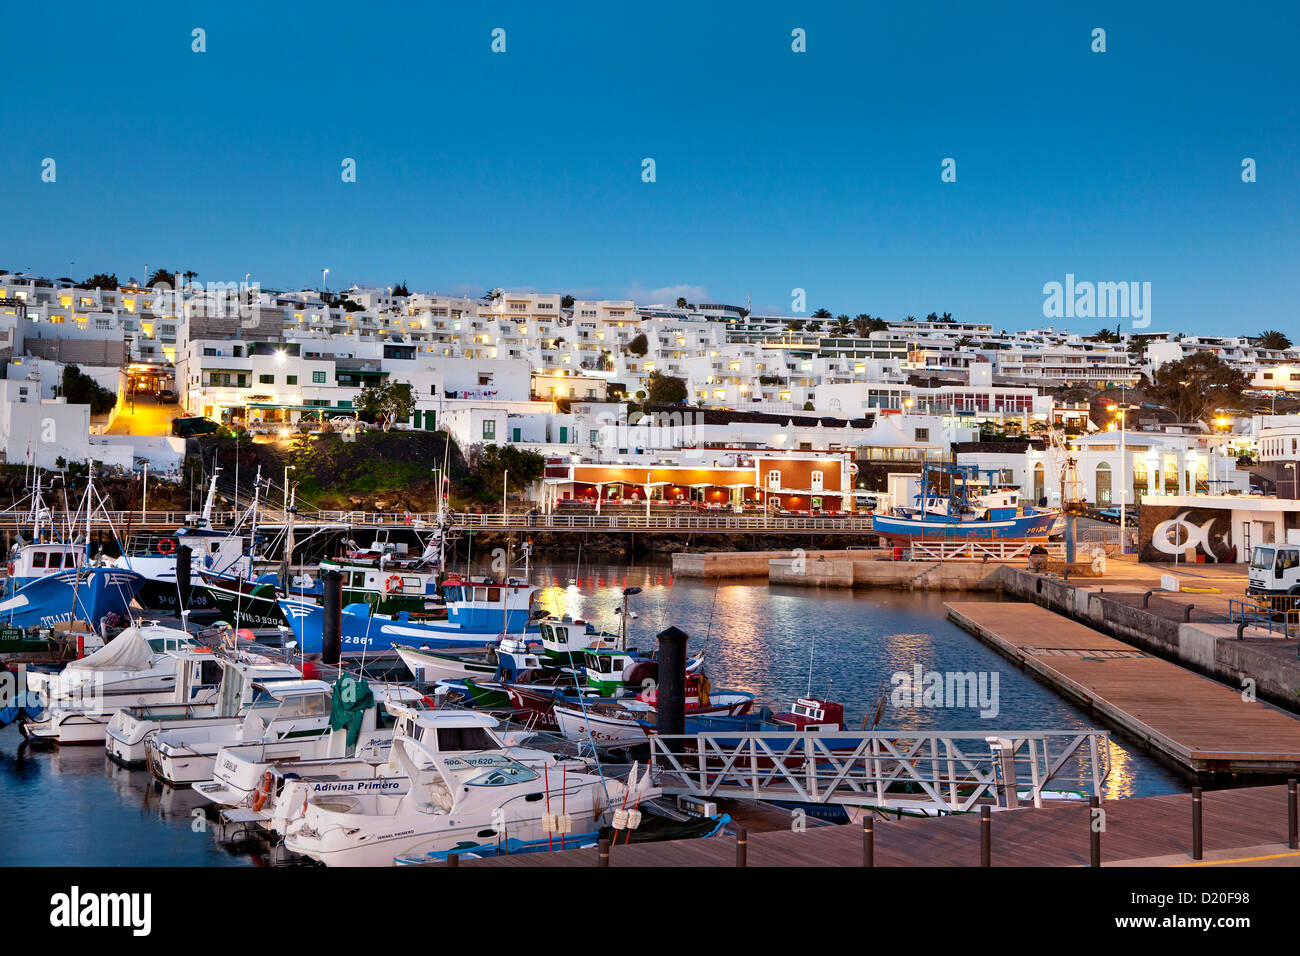 Illuminated harbour in the evening puerto del carmen lanzarote stock photo royalty free image - Port del carmen lanzarote ...